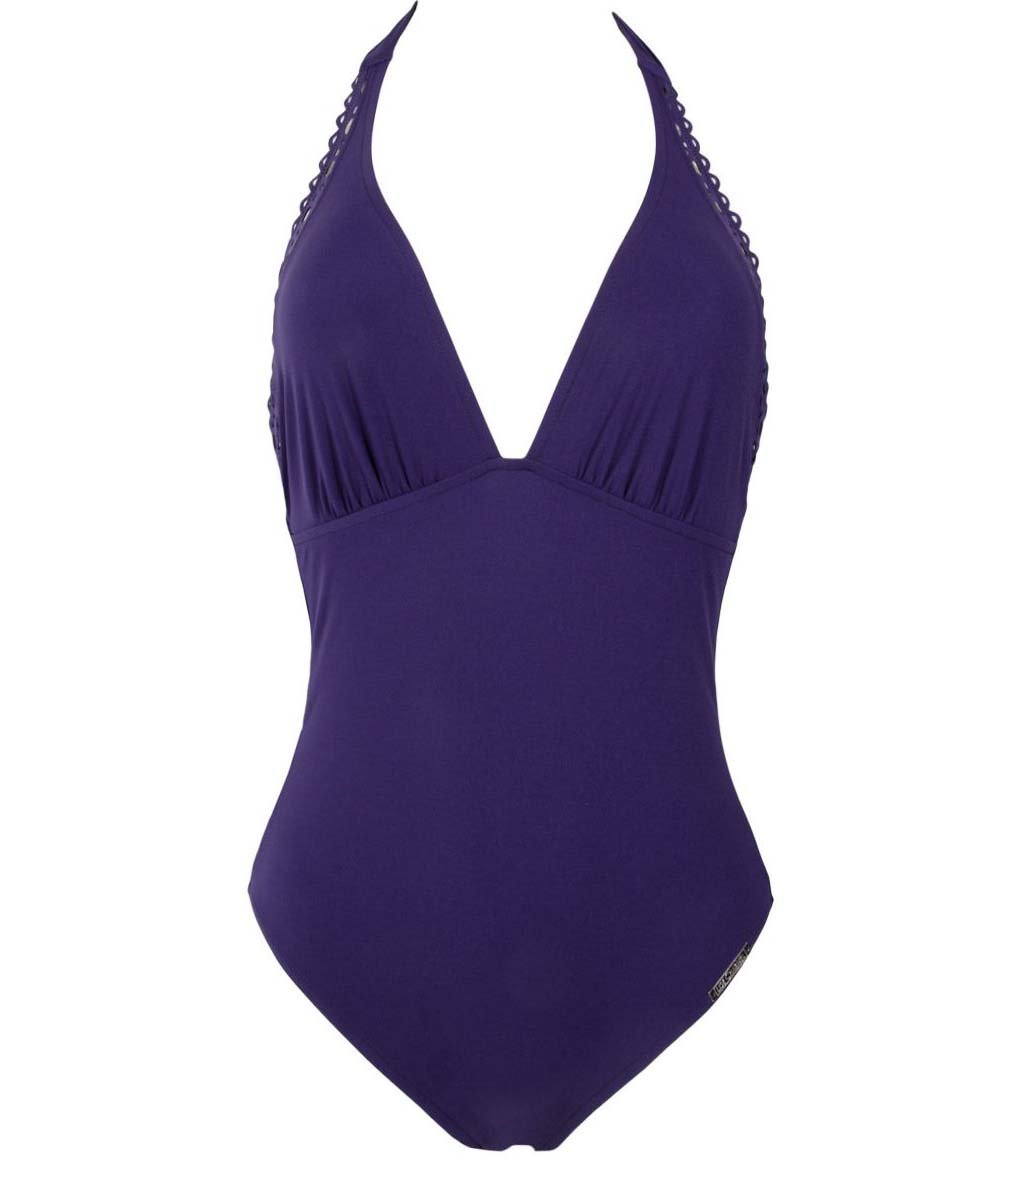 Lise Charmel 'Ajourage Couture' (Ajourage Royal) Halterneck Swimsuit - Sandra Dee - Product Shot - Front